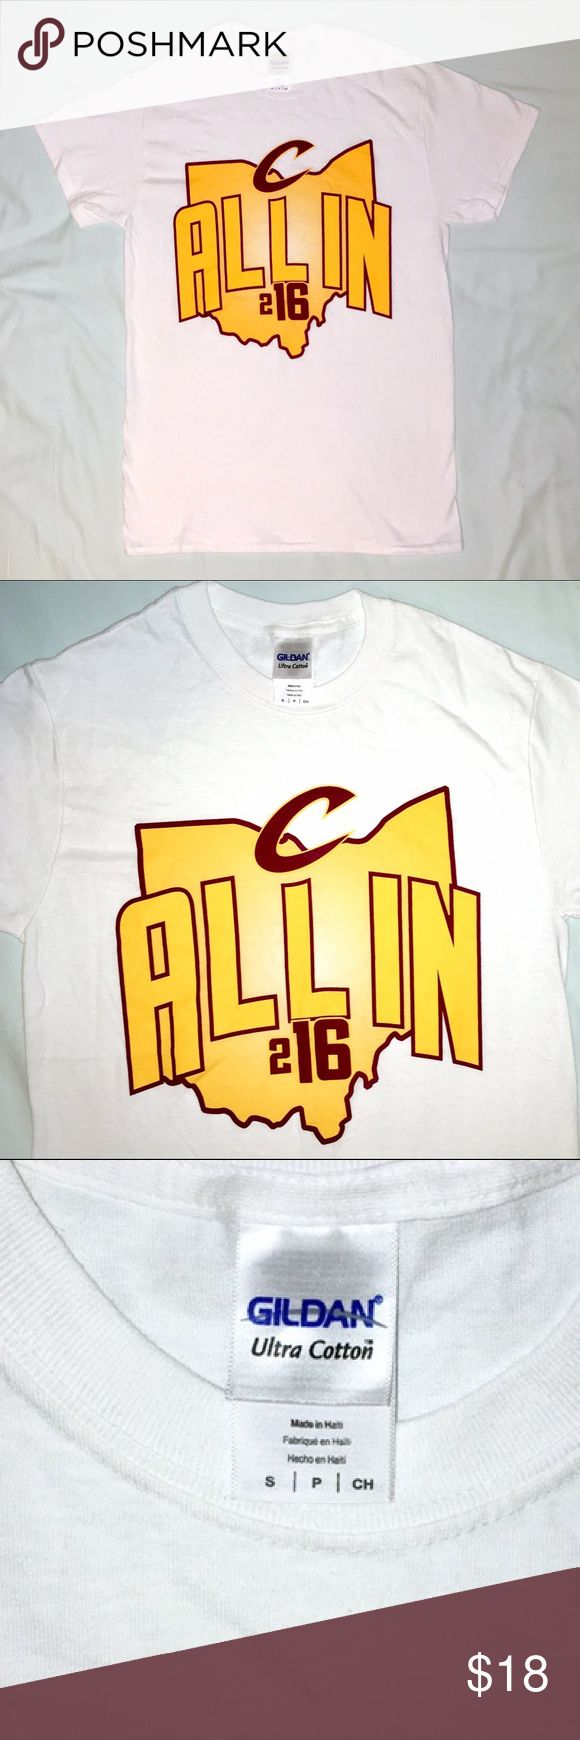 NWOT 2016 Cleveland Cavaliers T-shirt, Adult Small NWOT 2016 Cleveland Cavaliers T-shirt, Adult Size Small.  Brand new without tags.  Info: •2016 Cleveland Cavaliers  •White t-shirt with printing in the front in the Cavs colors (wine & gold).  T-shirt has the state of Ohio in the background and the shirt says All in 216 with the Cavs C logo.  T-shirt is plain white on the back. •Adult Size Small •Printed on a Gildan Ultra Cotton tee •Made of 100% cotton Cleveland Cavaliers, Cavs, Gildan…